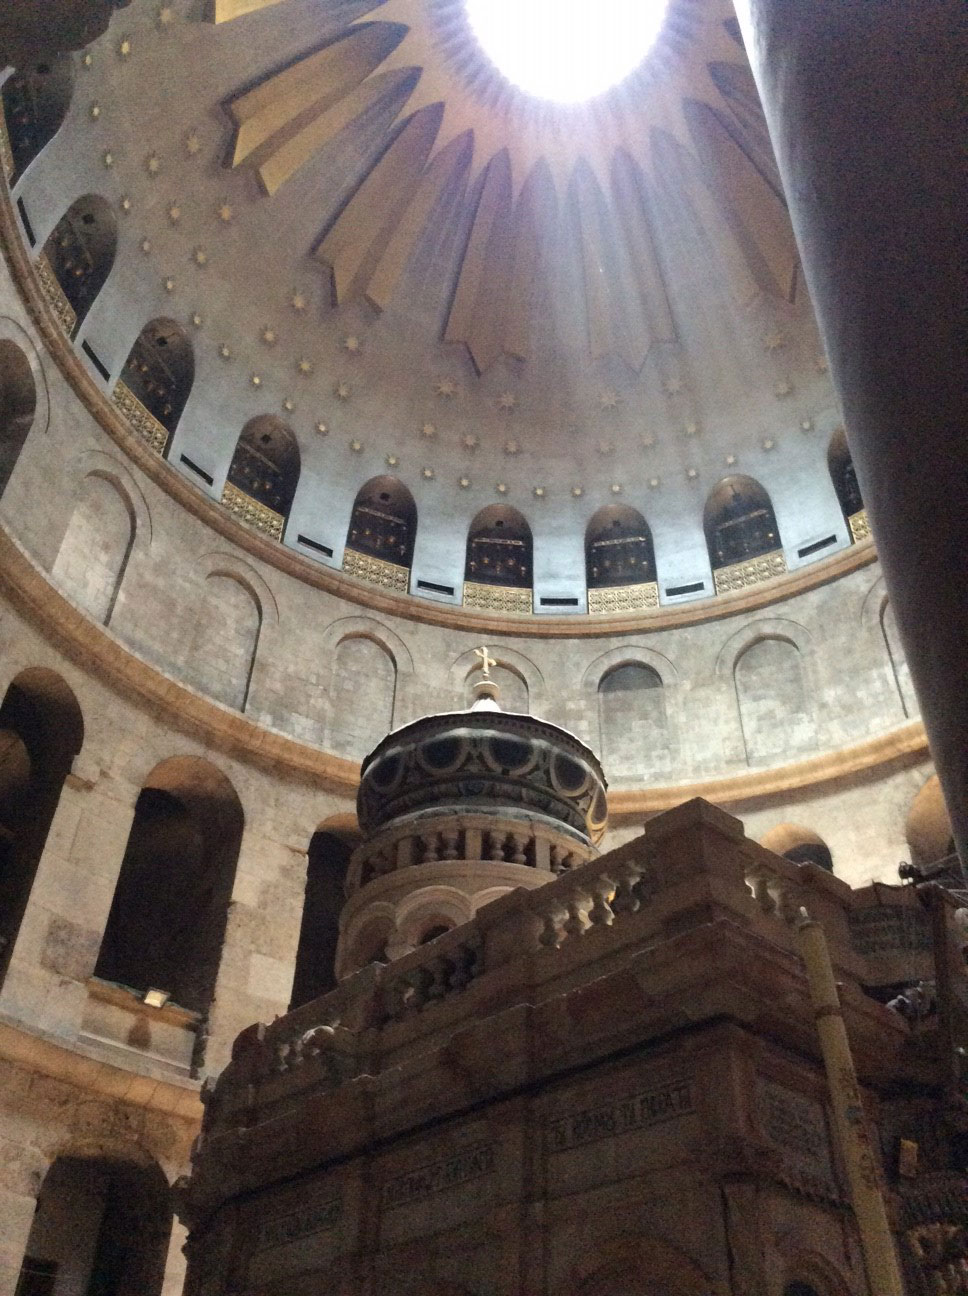 The Edicule, or Tomb of Christ, within the Church of the Holy Sepulchre.